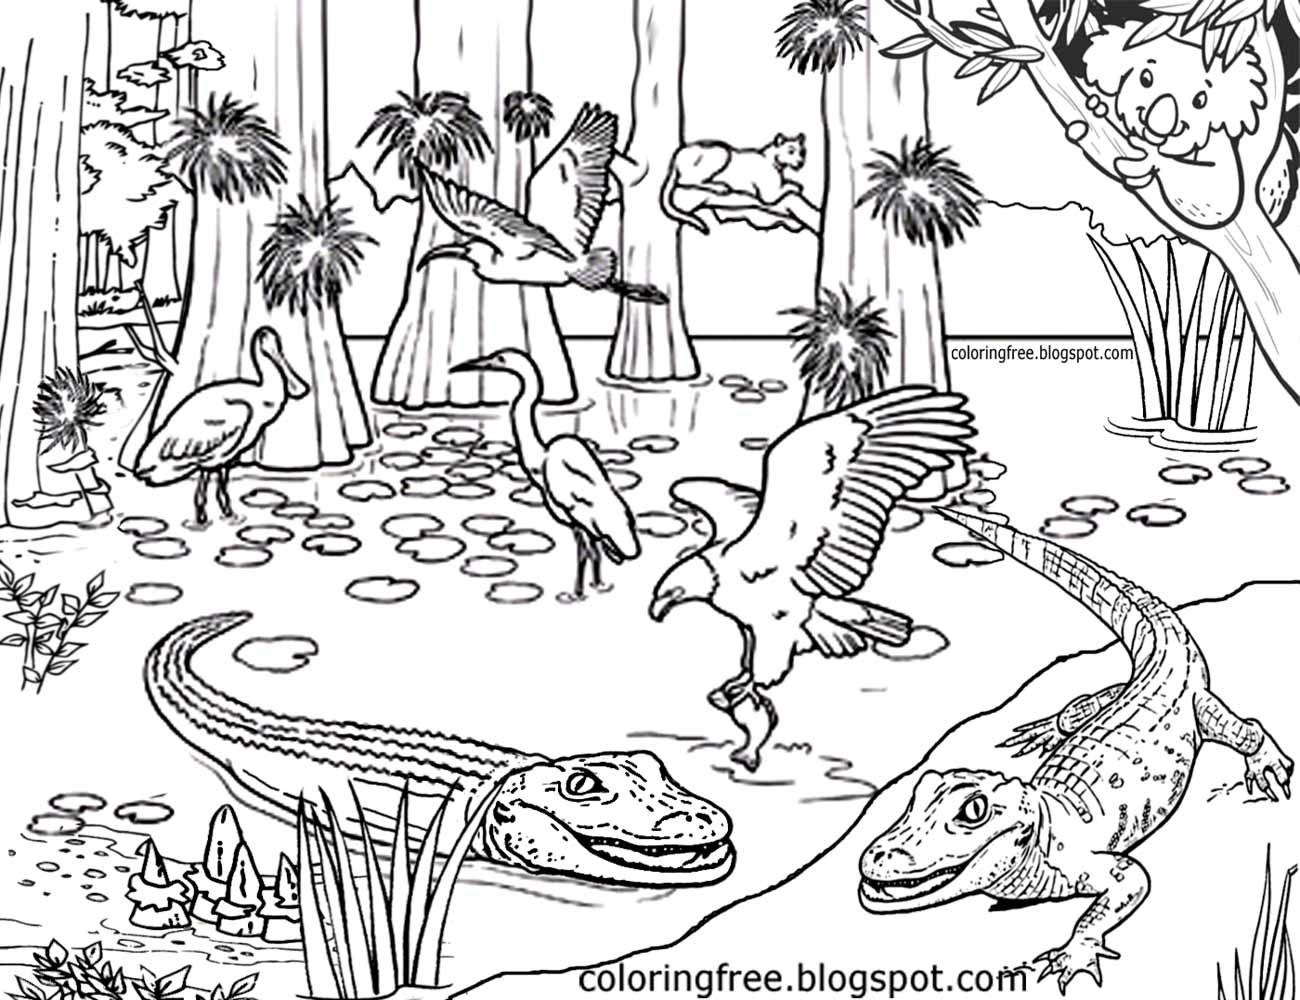 Rainforest Drawing For Kids at GetDrawings.com | Free for personal ...